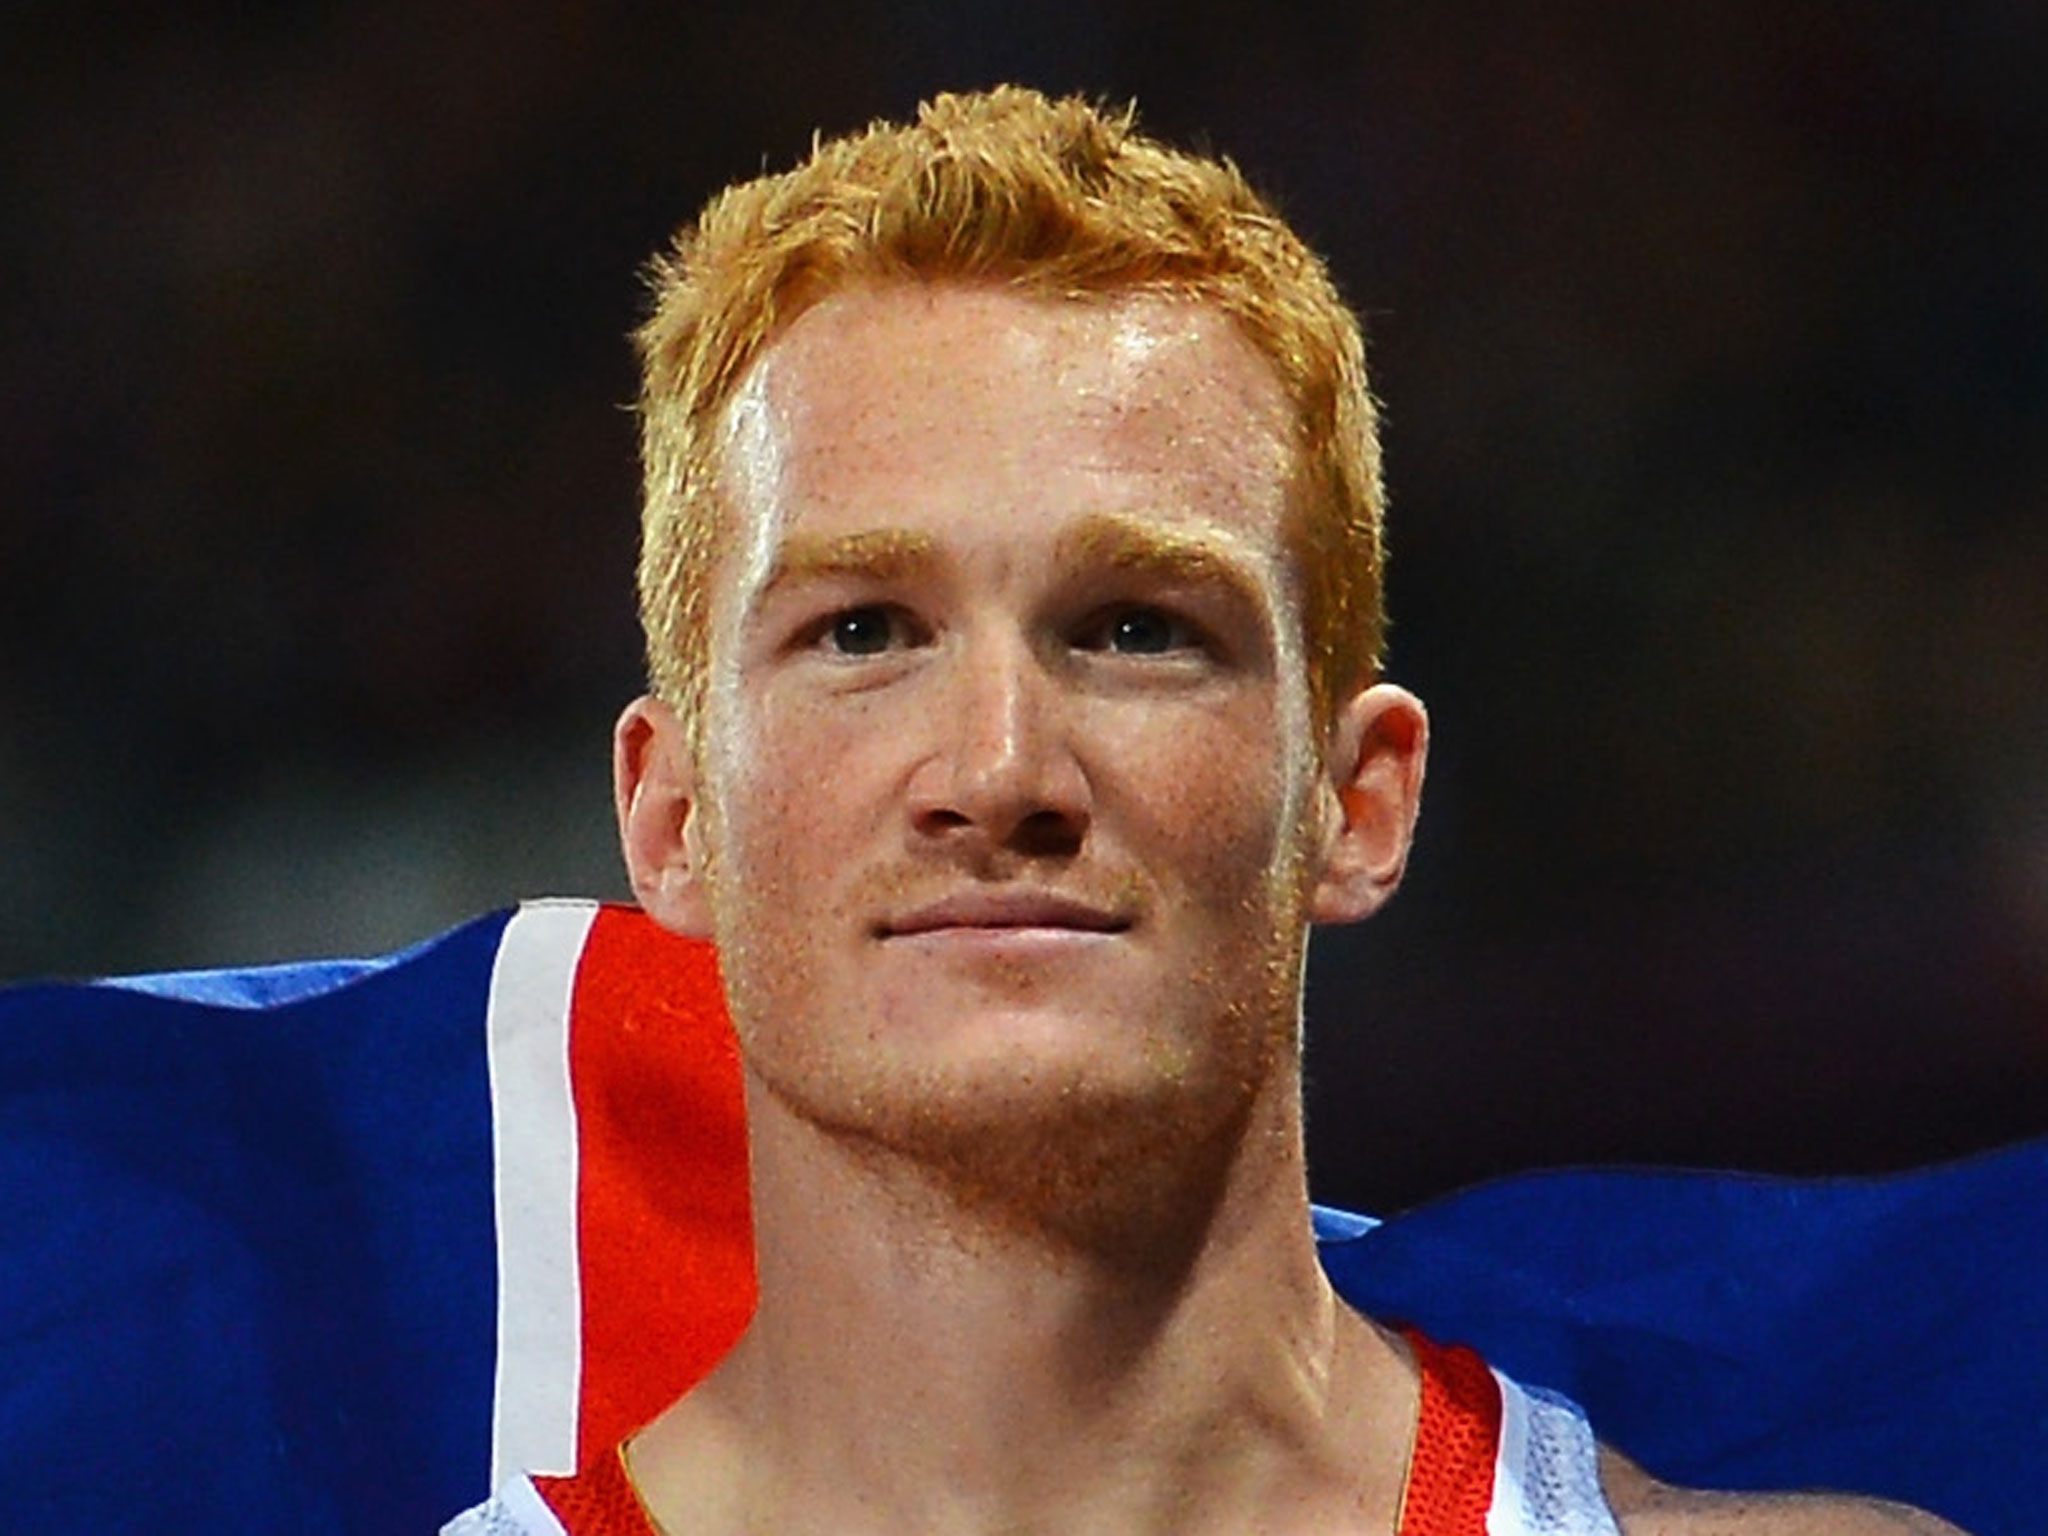 2048x1536 - Greg Rutherford Wallpapers 11